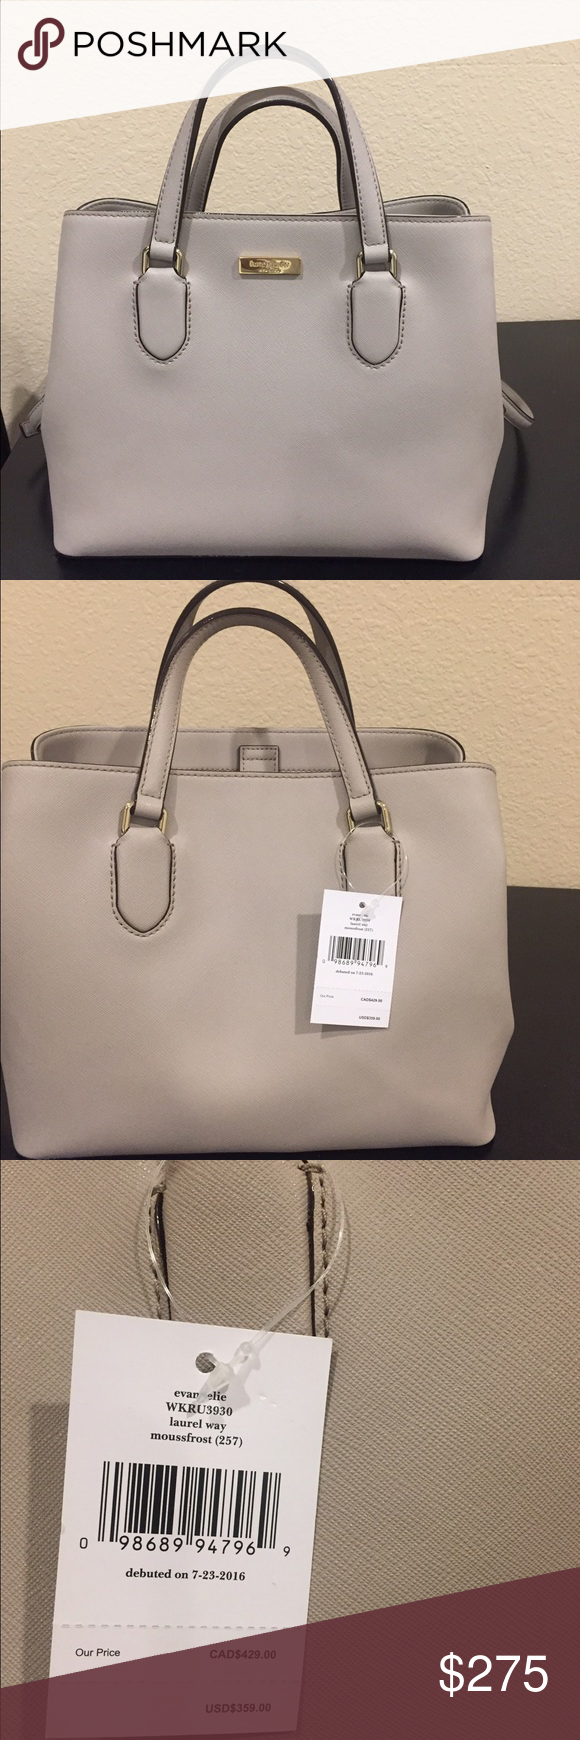 Kate Spade purse Brand New Kate Spade purse! Tags still on!! Style is laurel way and color is moussfrost! kate spade Bags Crossbody Bags